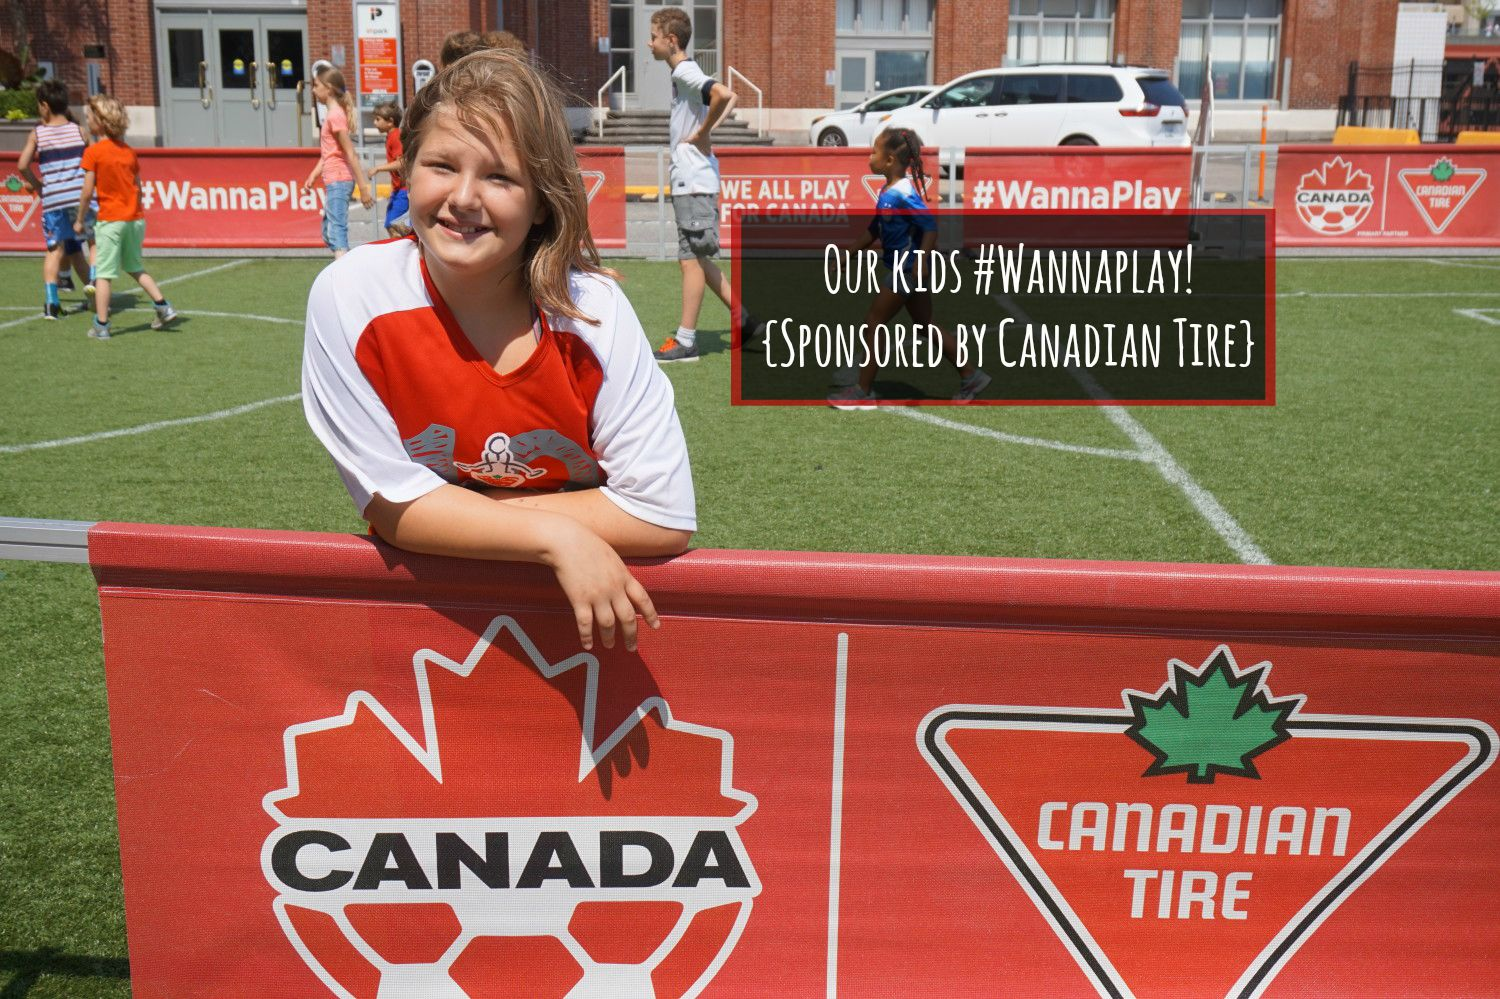 Wannaplay Canadian Tire